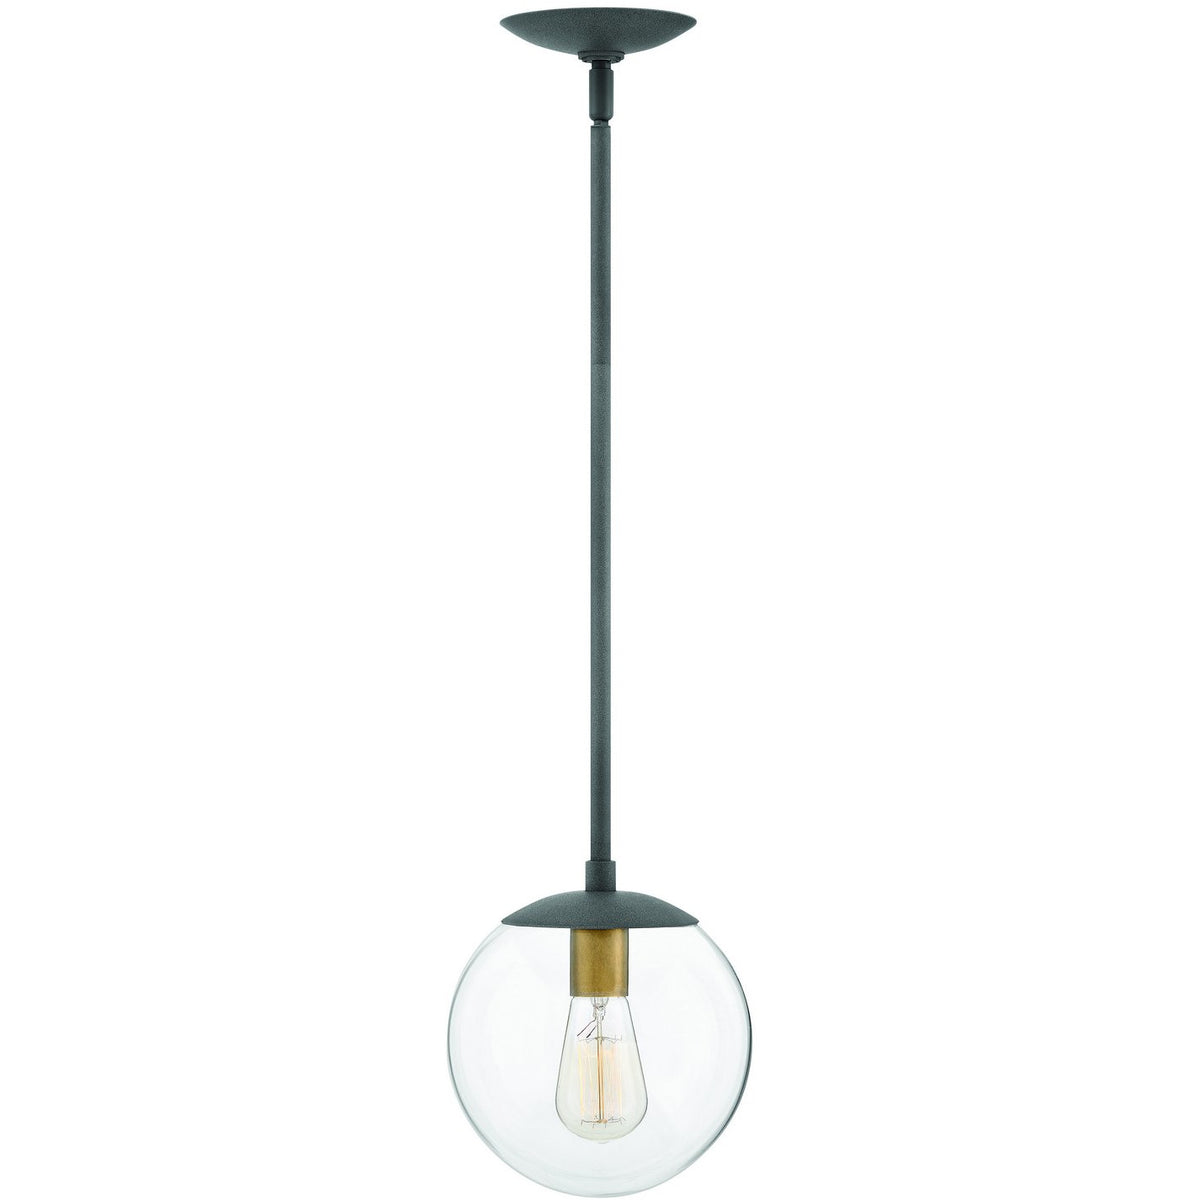 Hinkley Canada - 3747DZ - One Light Pendant - Warby - Aged Zinc